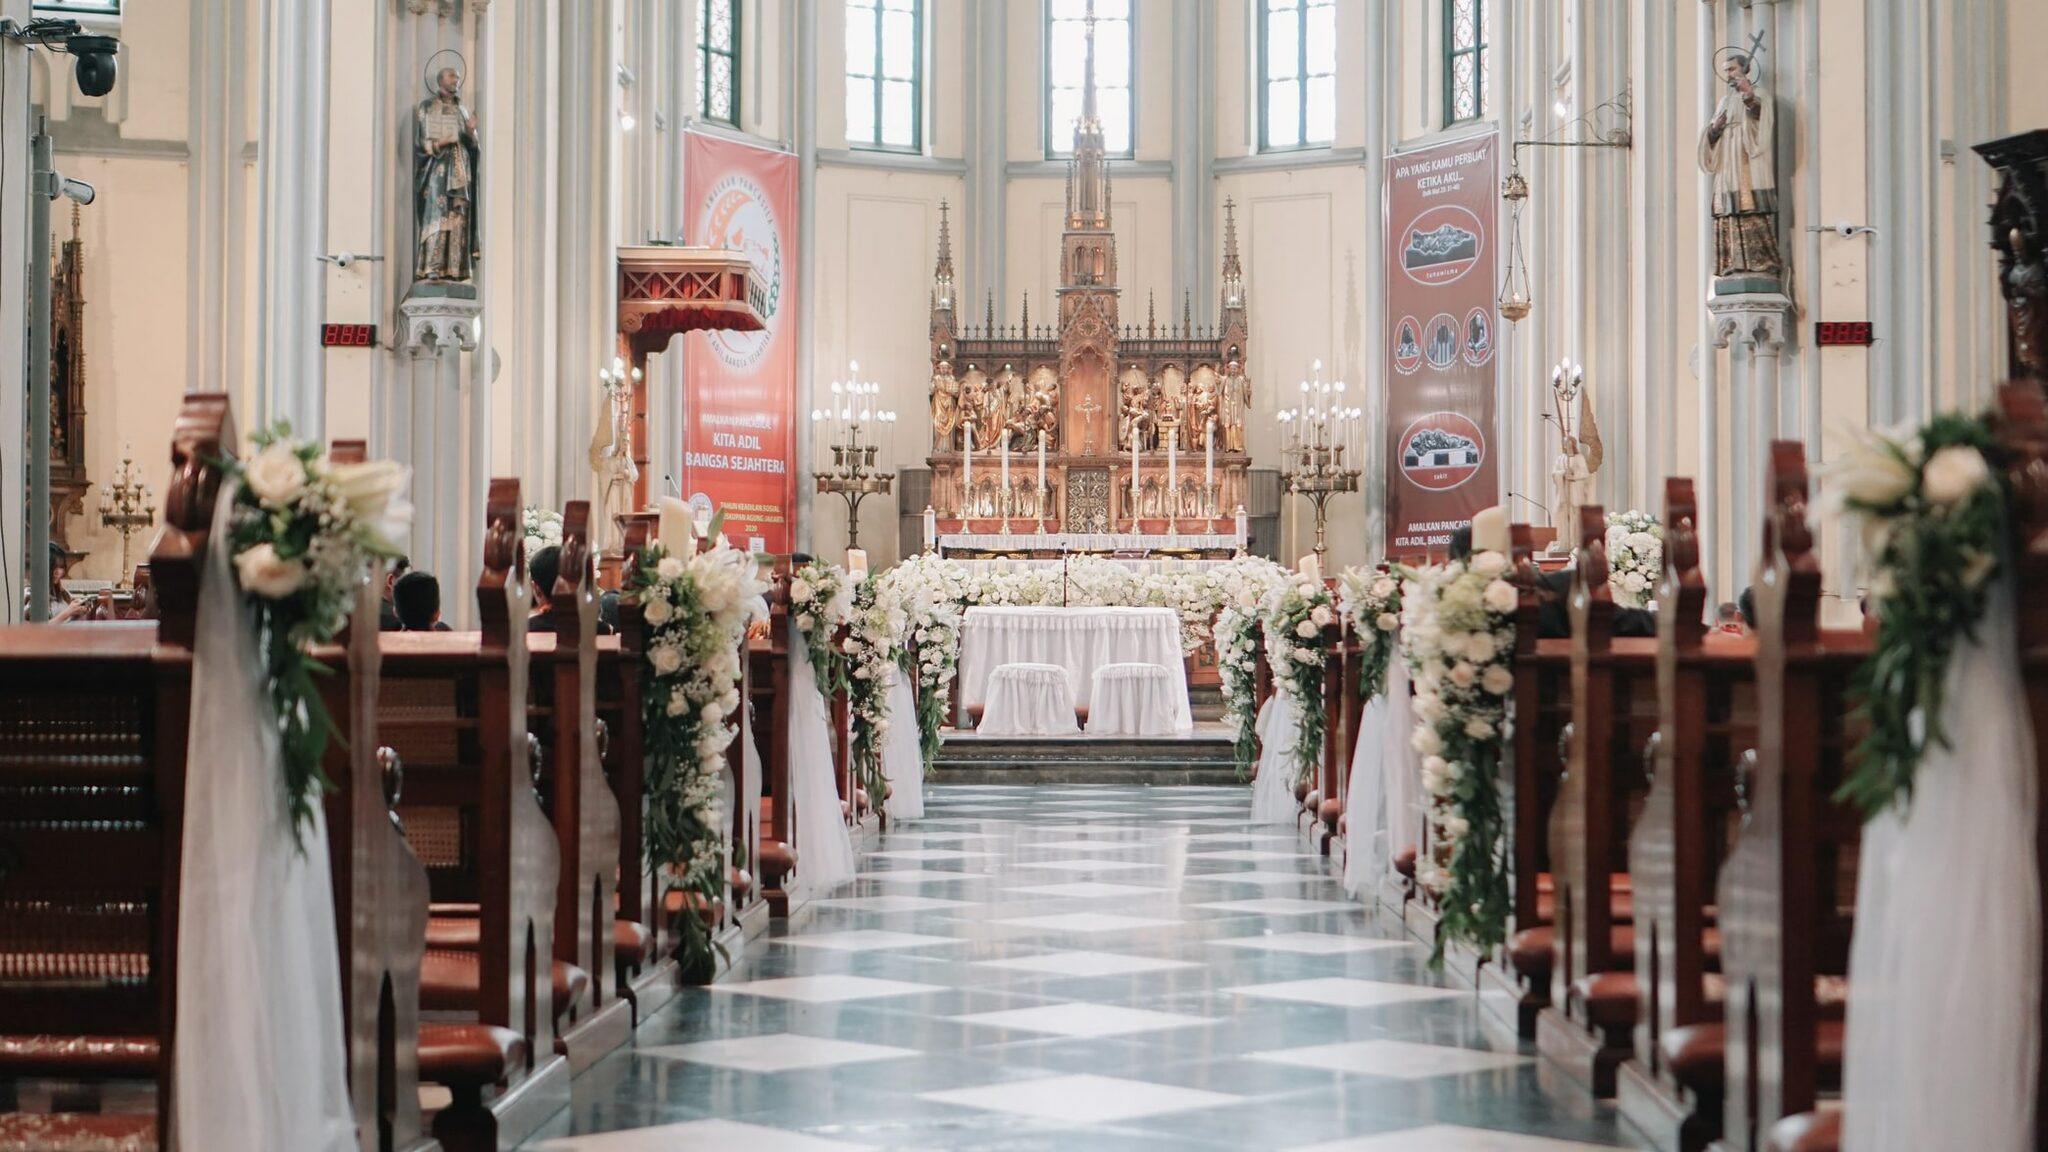 Best Church/Temple wedding venues in Texas